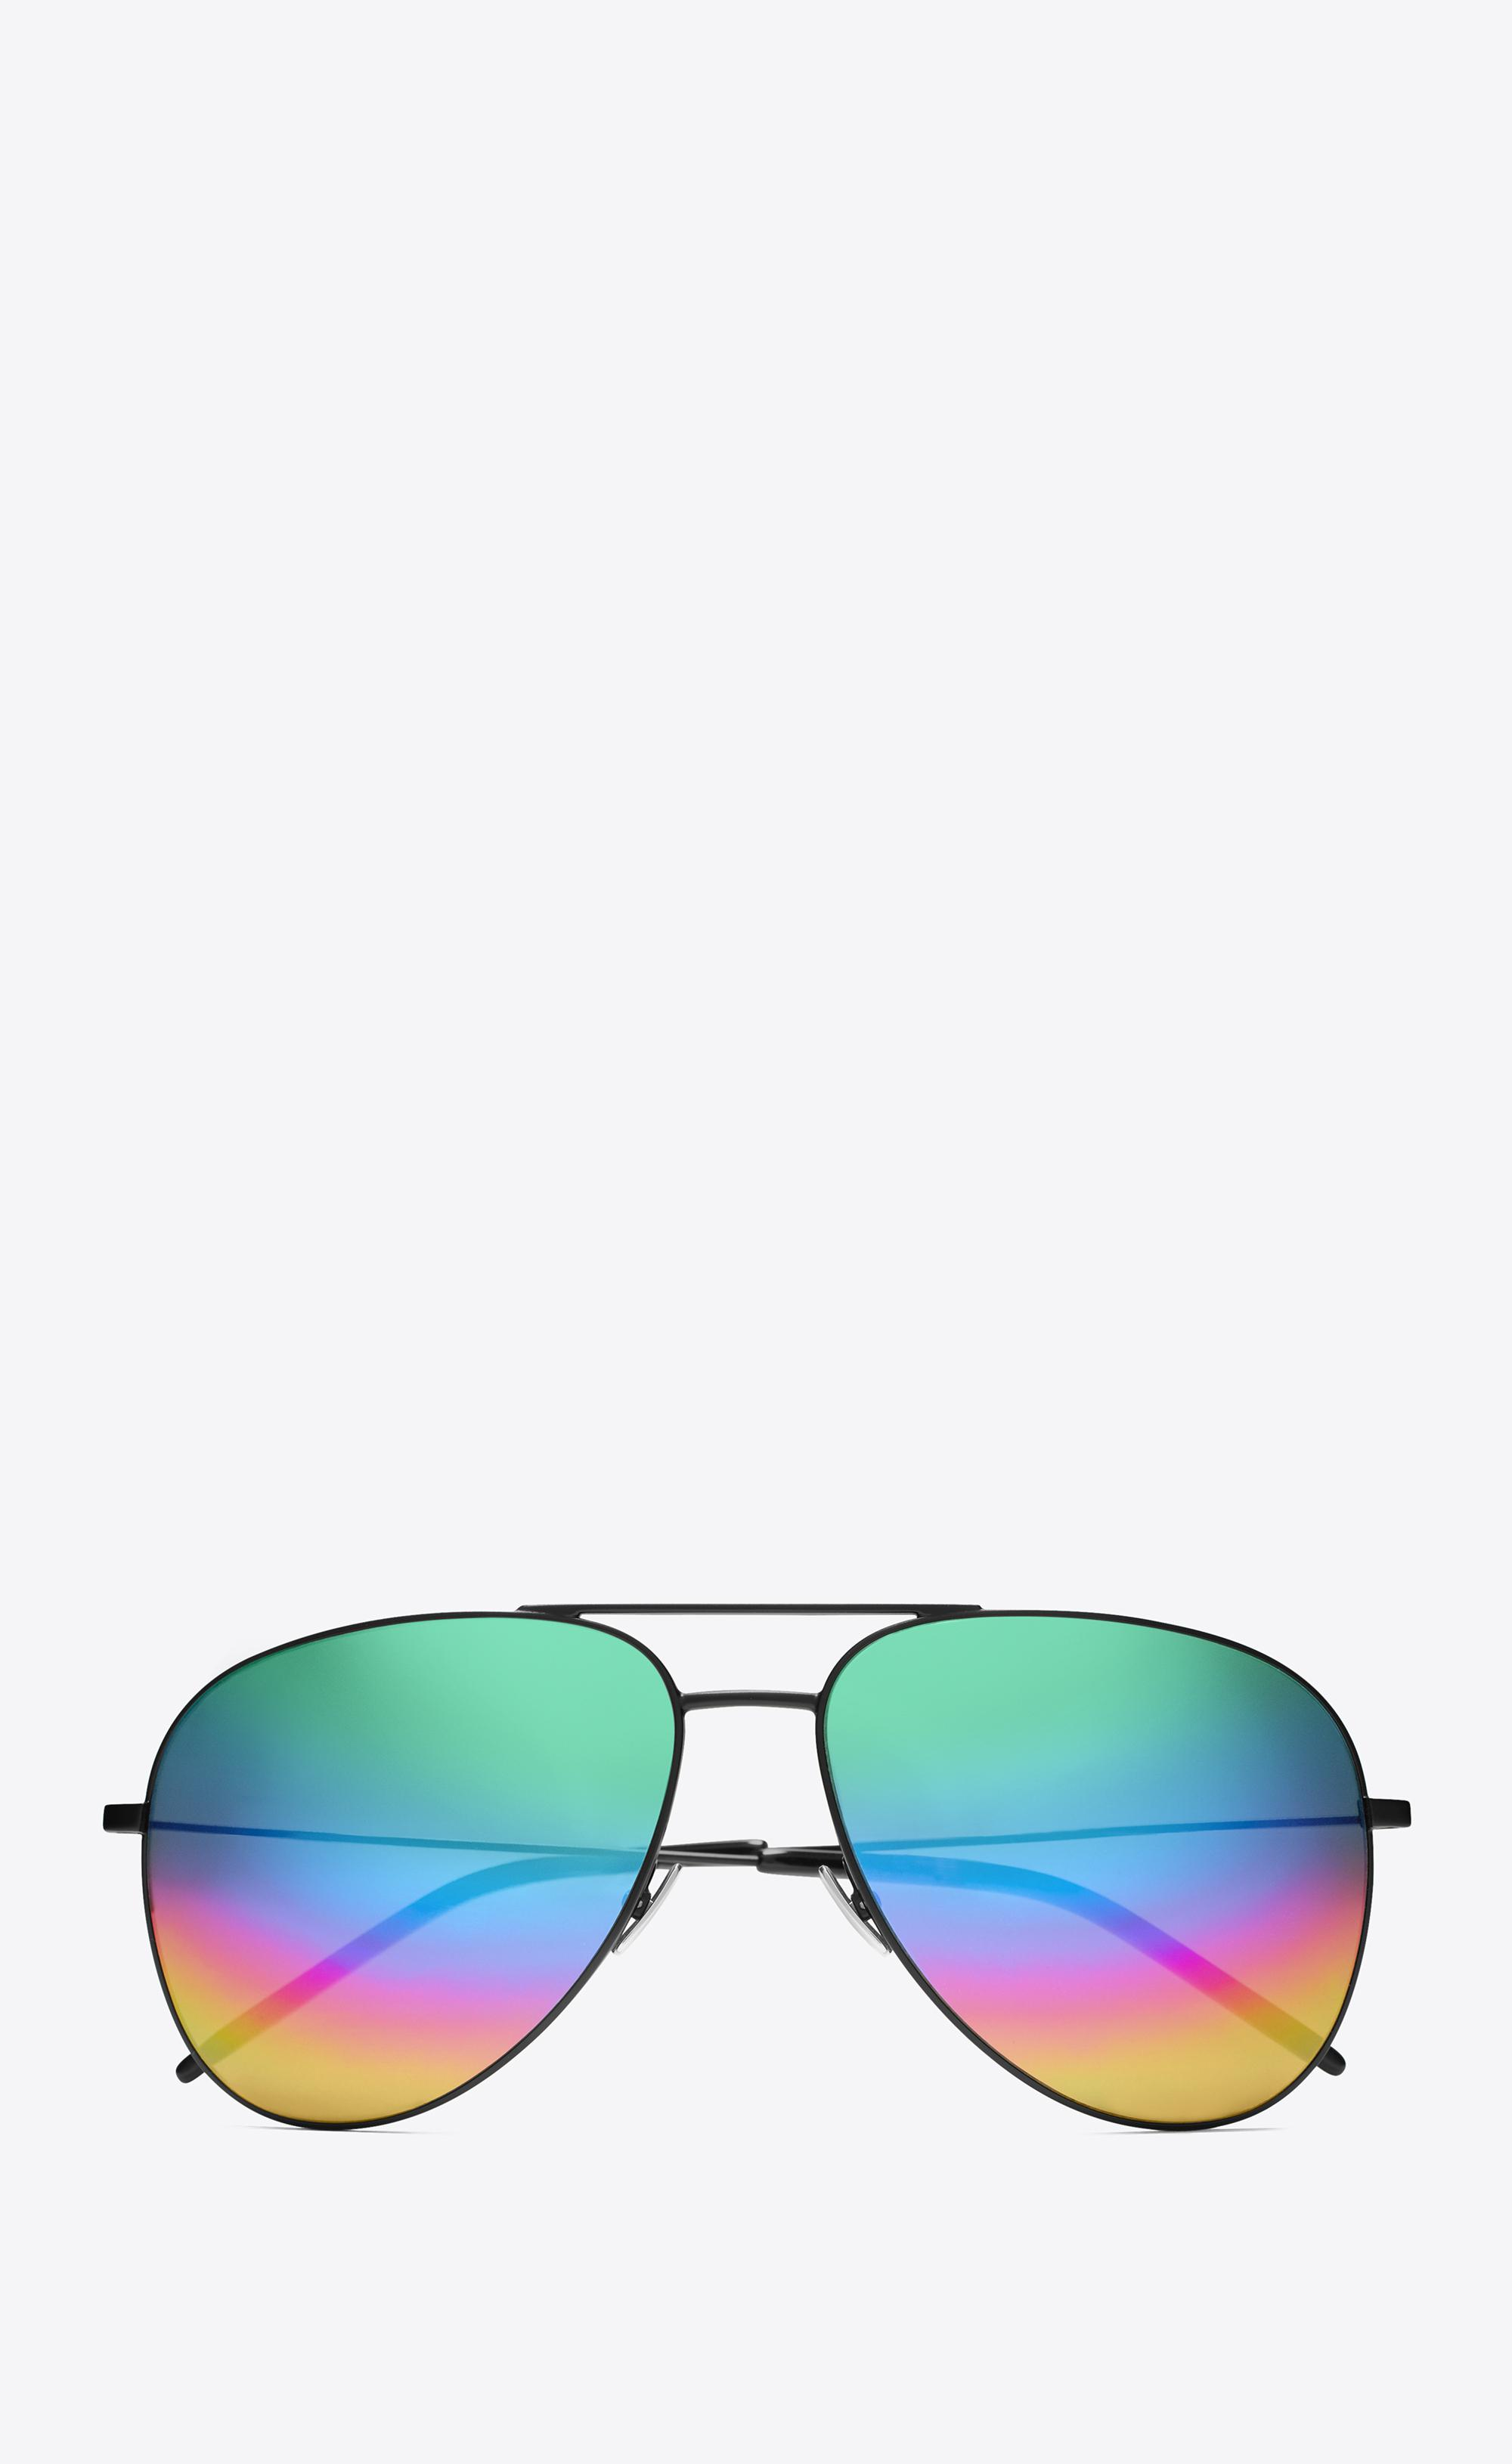 rainbow Classic 11 sunglasses - Metallic Saint Laurent Eyewear S264r0DF